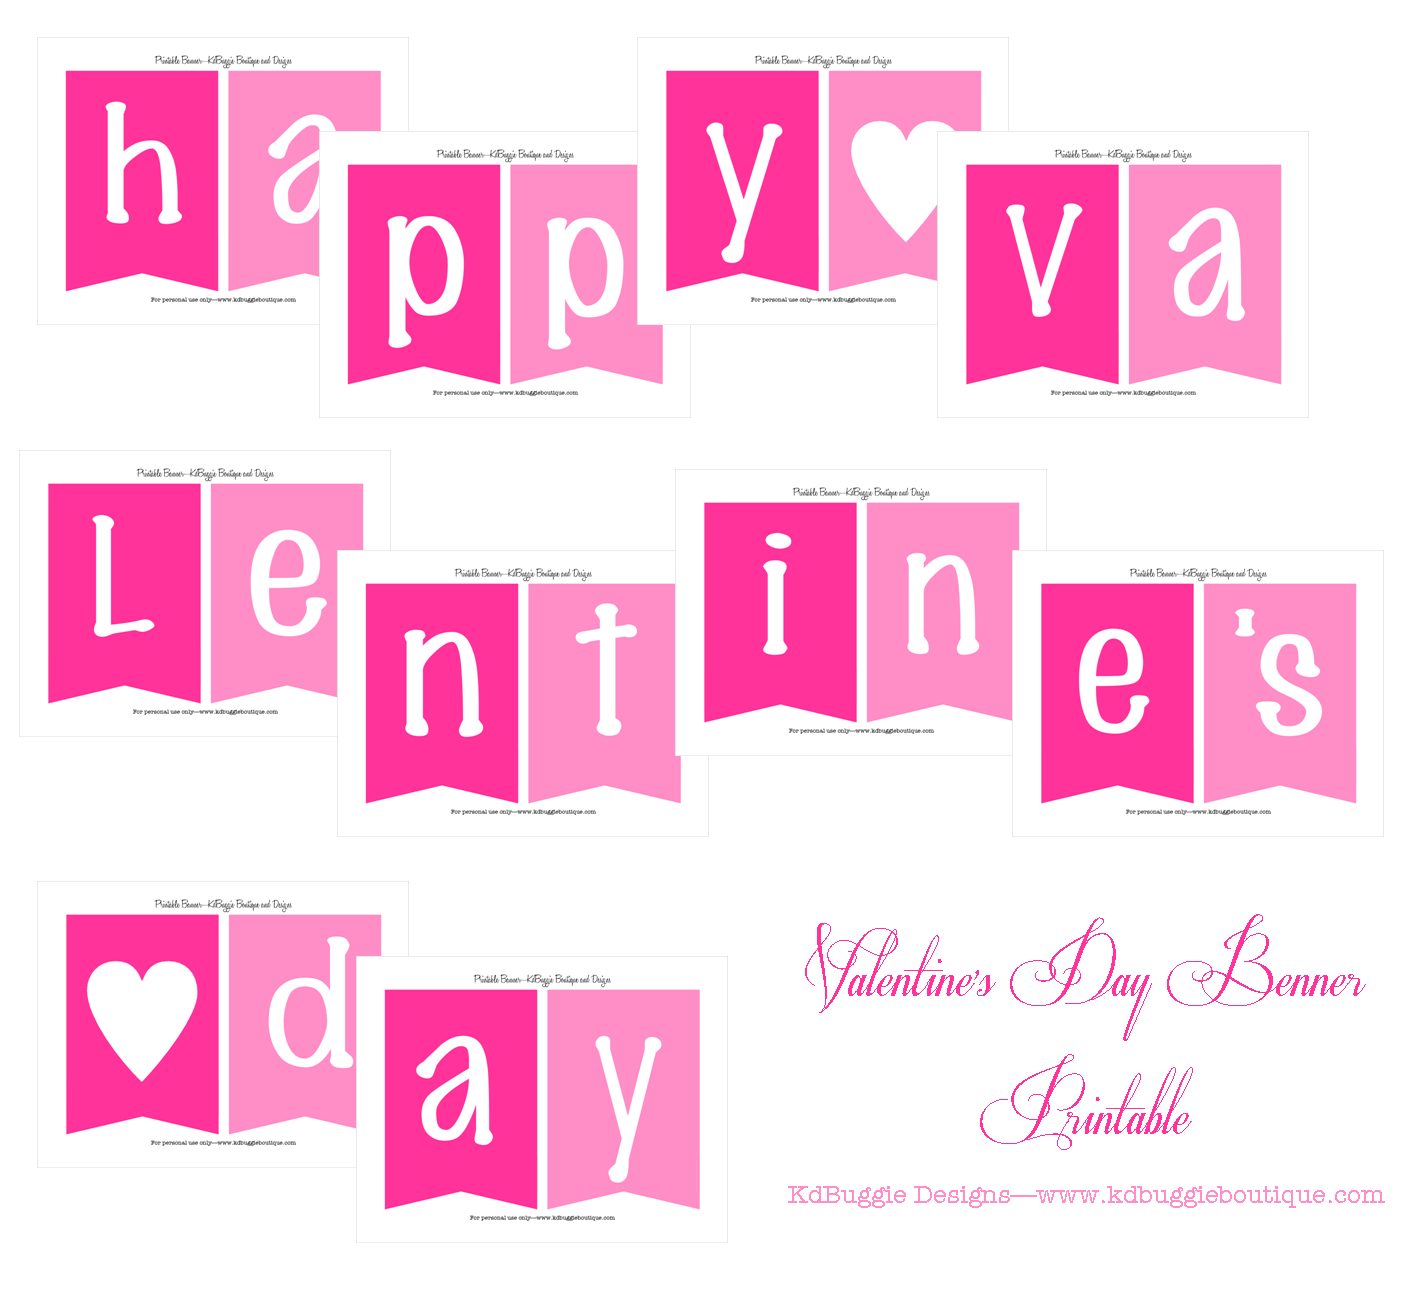 8 Images of Printable Valentine's Day Banners